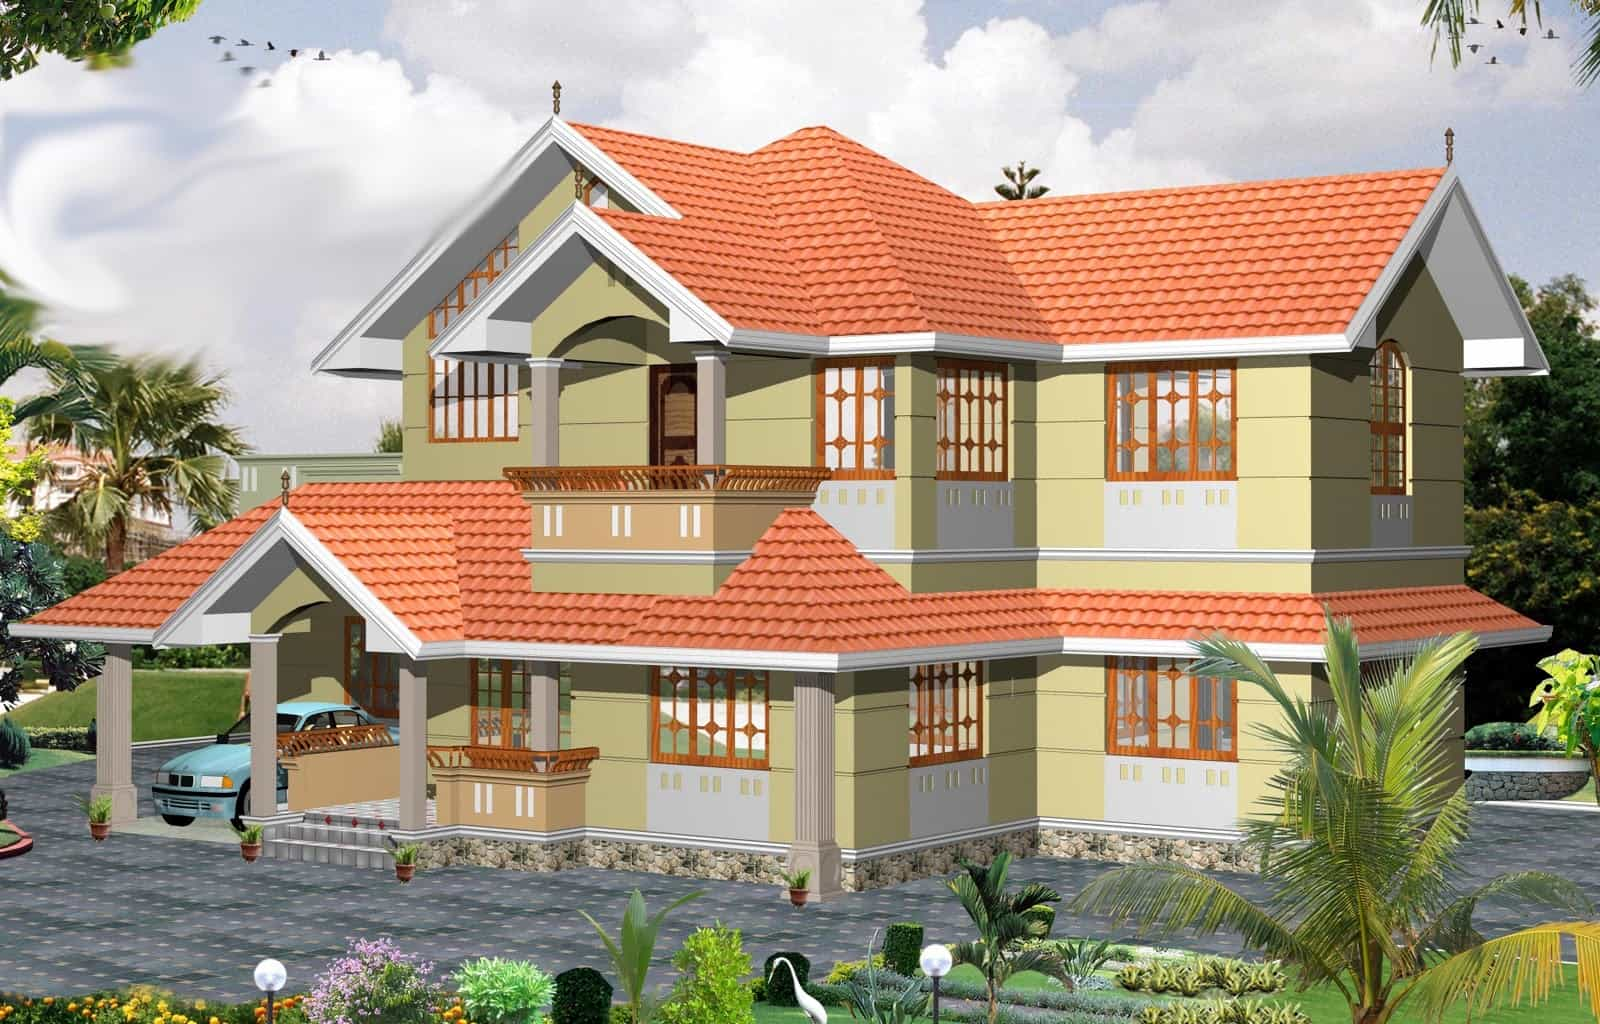 Traditional 3 bhk kerala villa design at 2000 for 3000 sq ft house plans kerala style